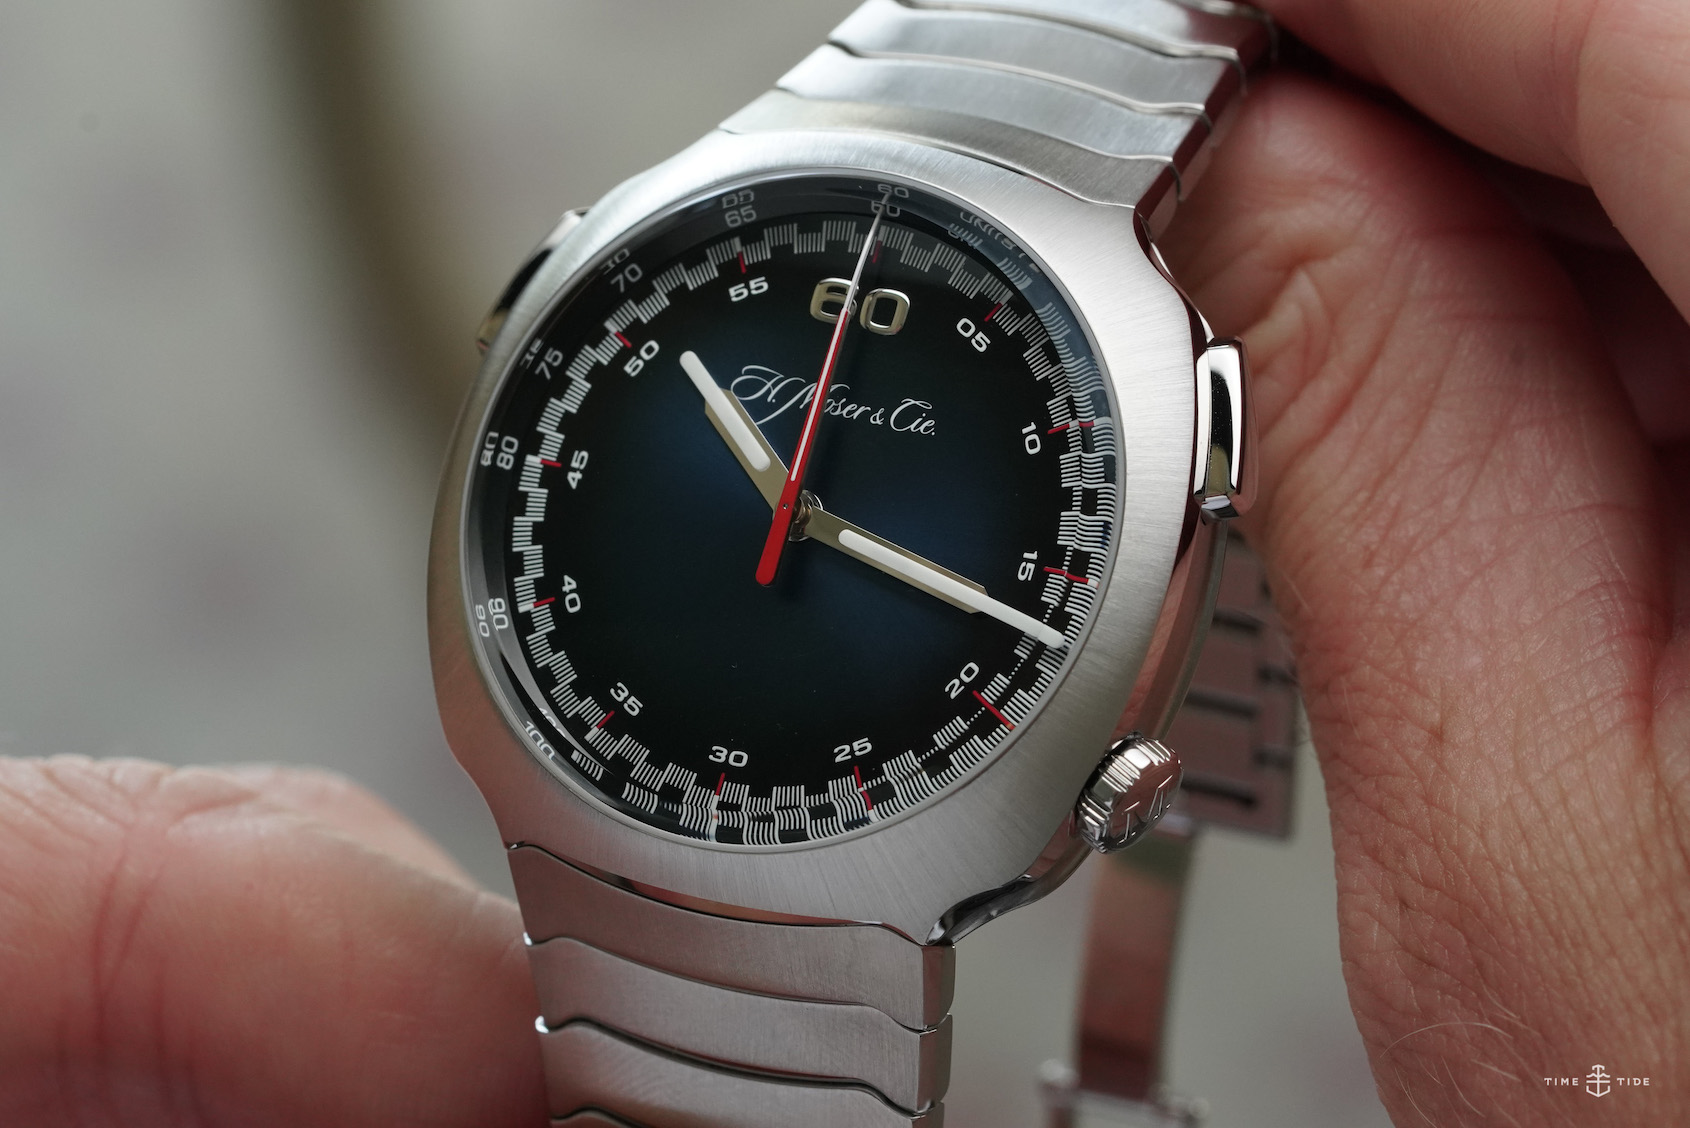 VIDEO: The H.Moser & Cie Streamliner Flyback Chronograph refuses to play by the rules